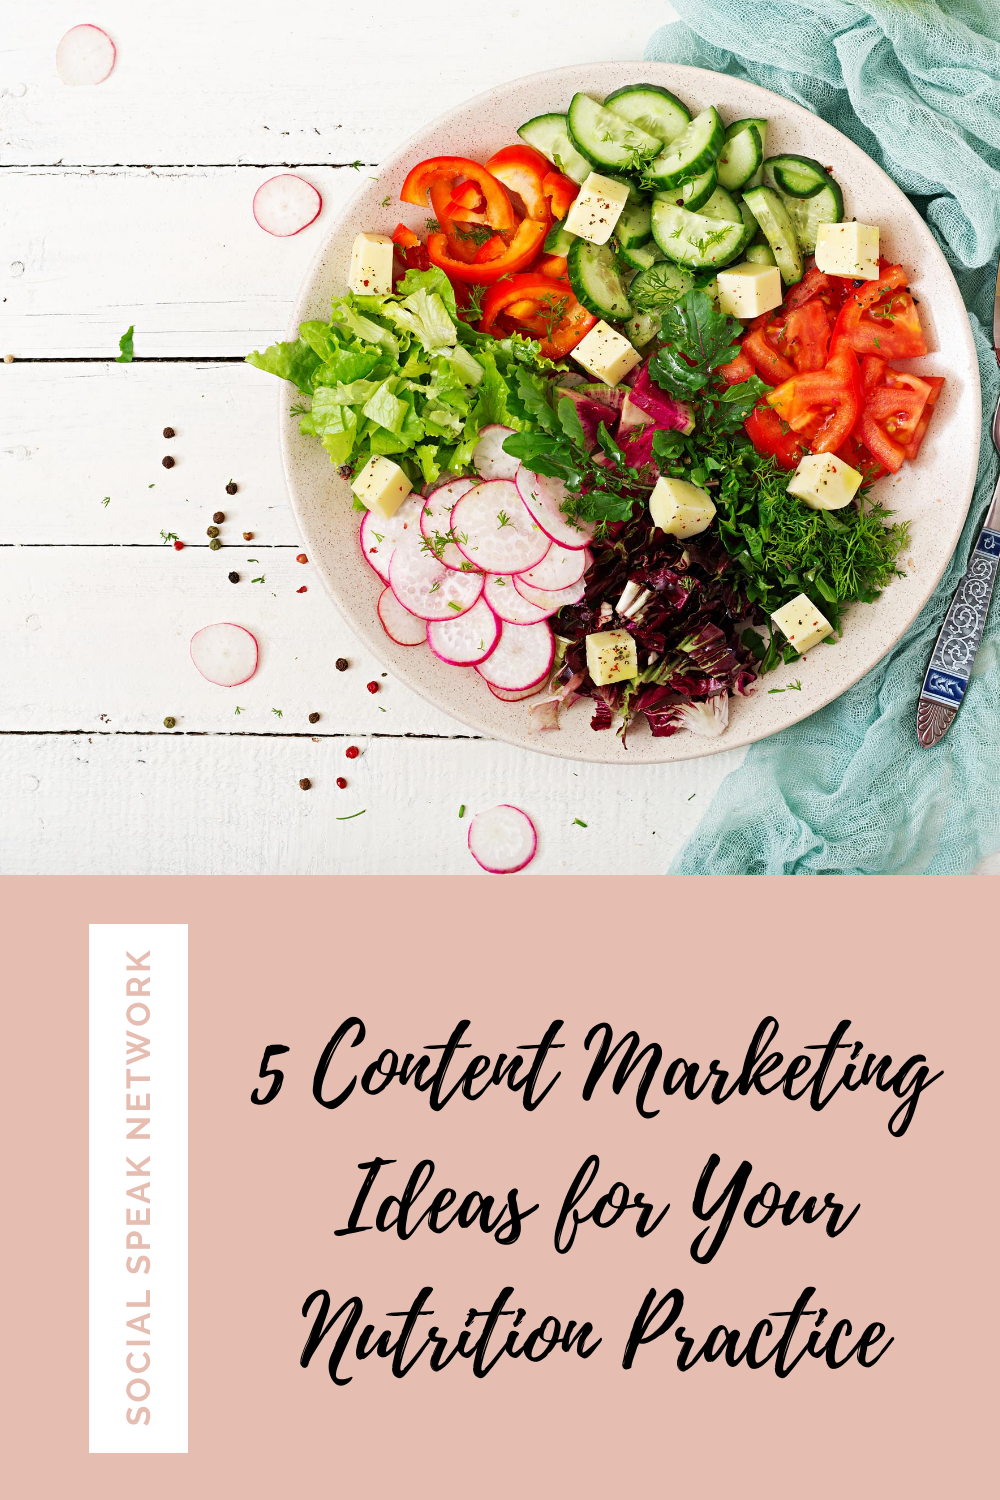 5 Content Marketing Ideas for Your Nutrition Practice